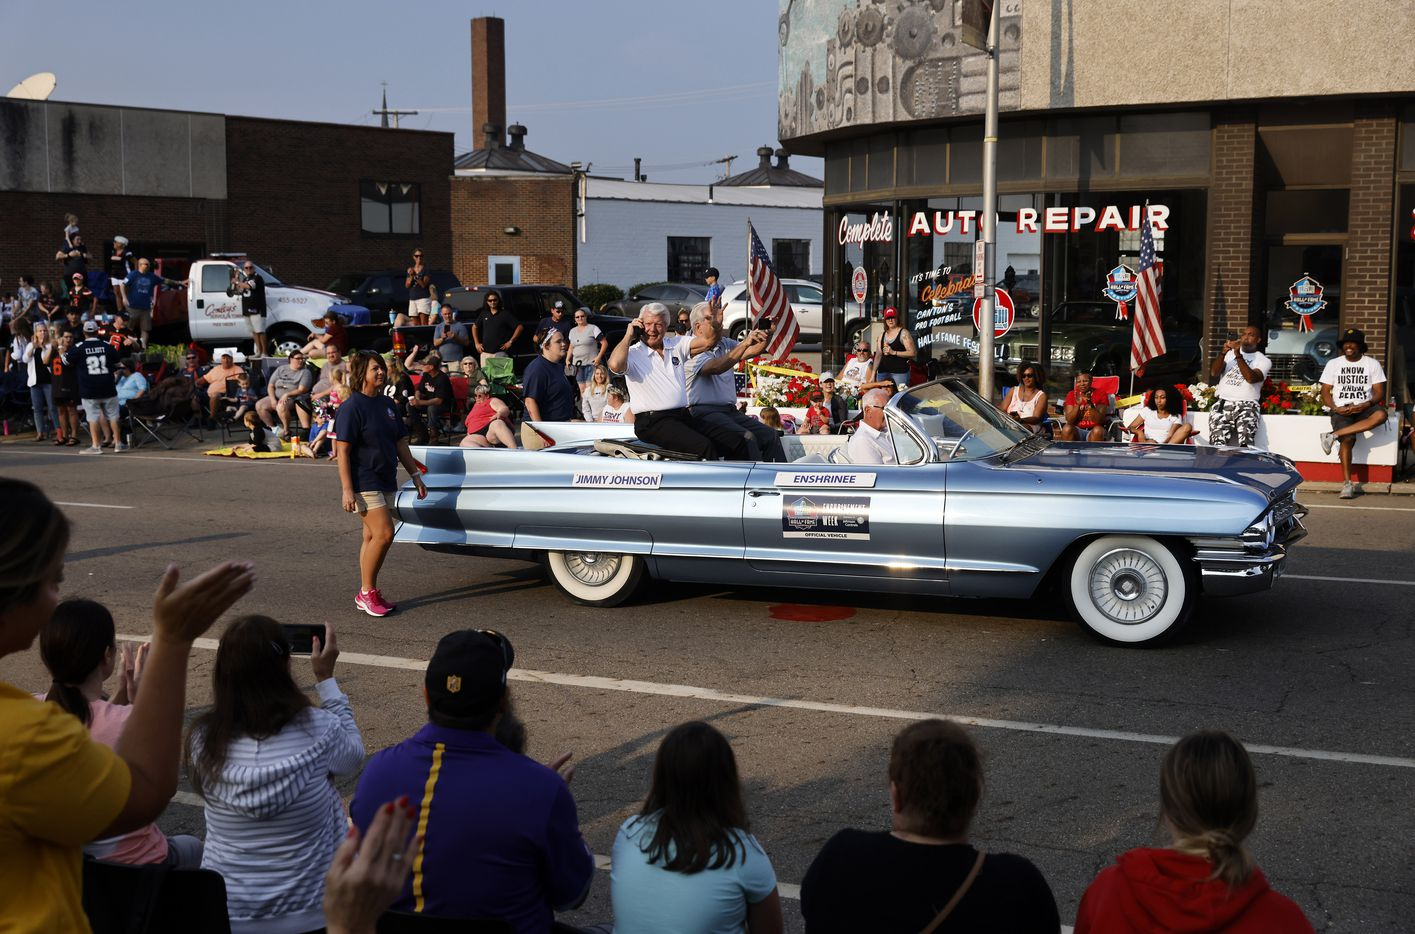 Dallas Cowboys head coach and Pro Football Hall of Fame inductee Jimmy Johnson waves to fans in the Canton Repository Grand Parade as he rides in a classic convertible car in downtown Canton, Ohio, Saturday, August 7, 2021. The parade honored newly elected and former members of the Hall, including newcomers and former Dallas Cowboys players Cliff Harris, Drew Pearson and head coach Jimmy Johnson. (Tom Fox/The Dallas Morning News)